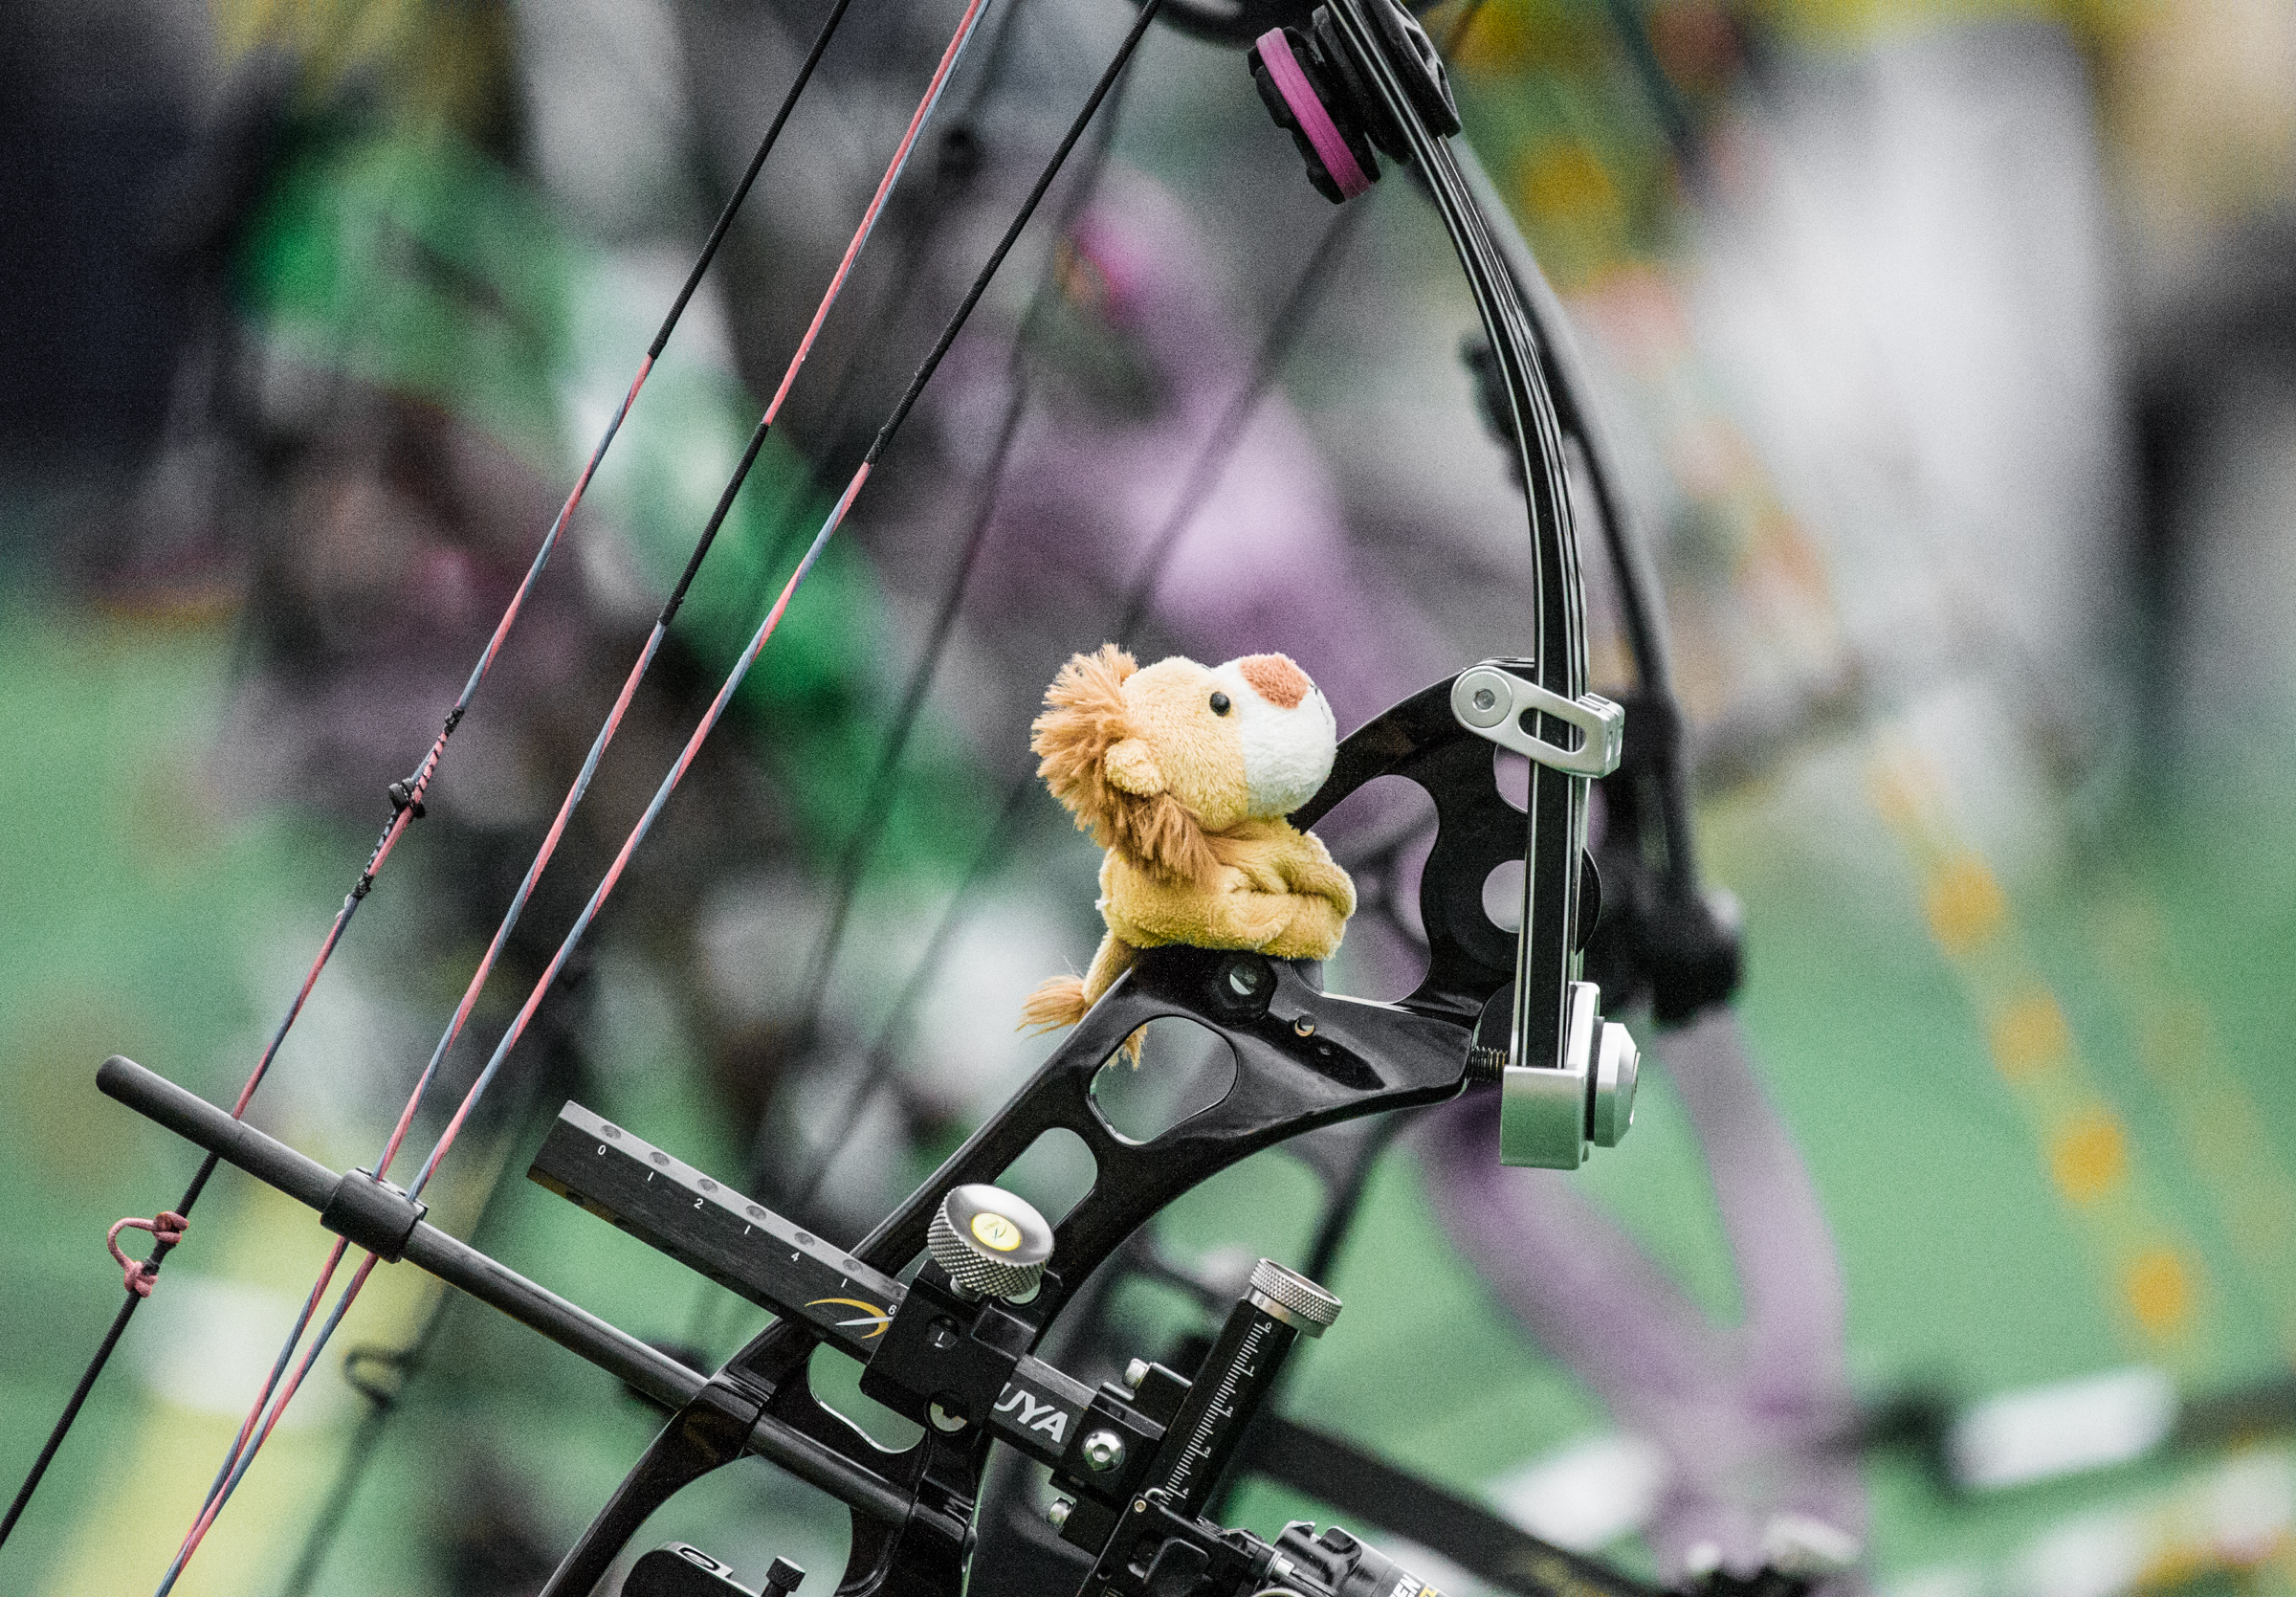 A lion sits on an archer's bow during the archery competition of the ASEAN University Games at the National Institute of Education.